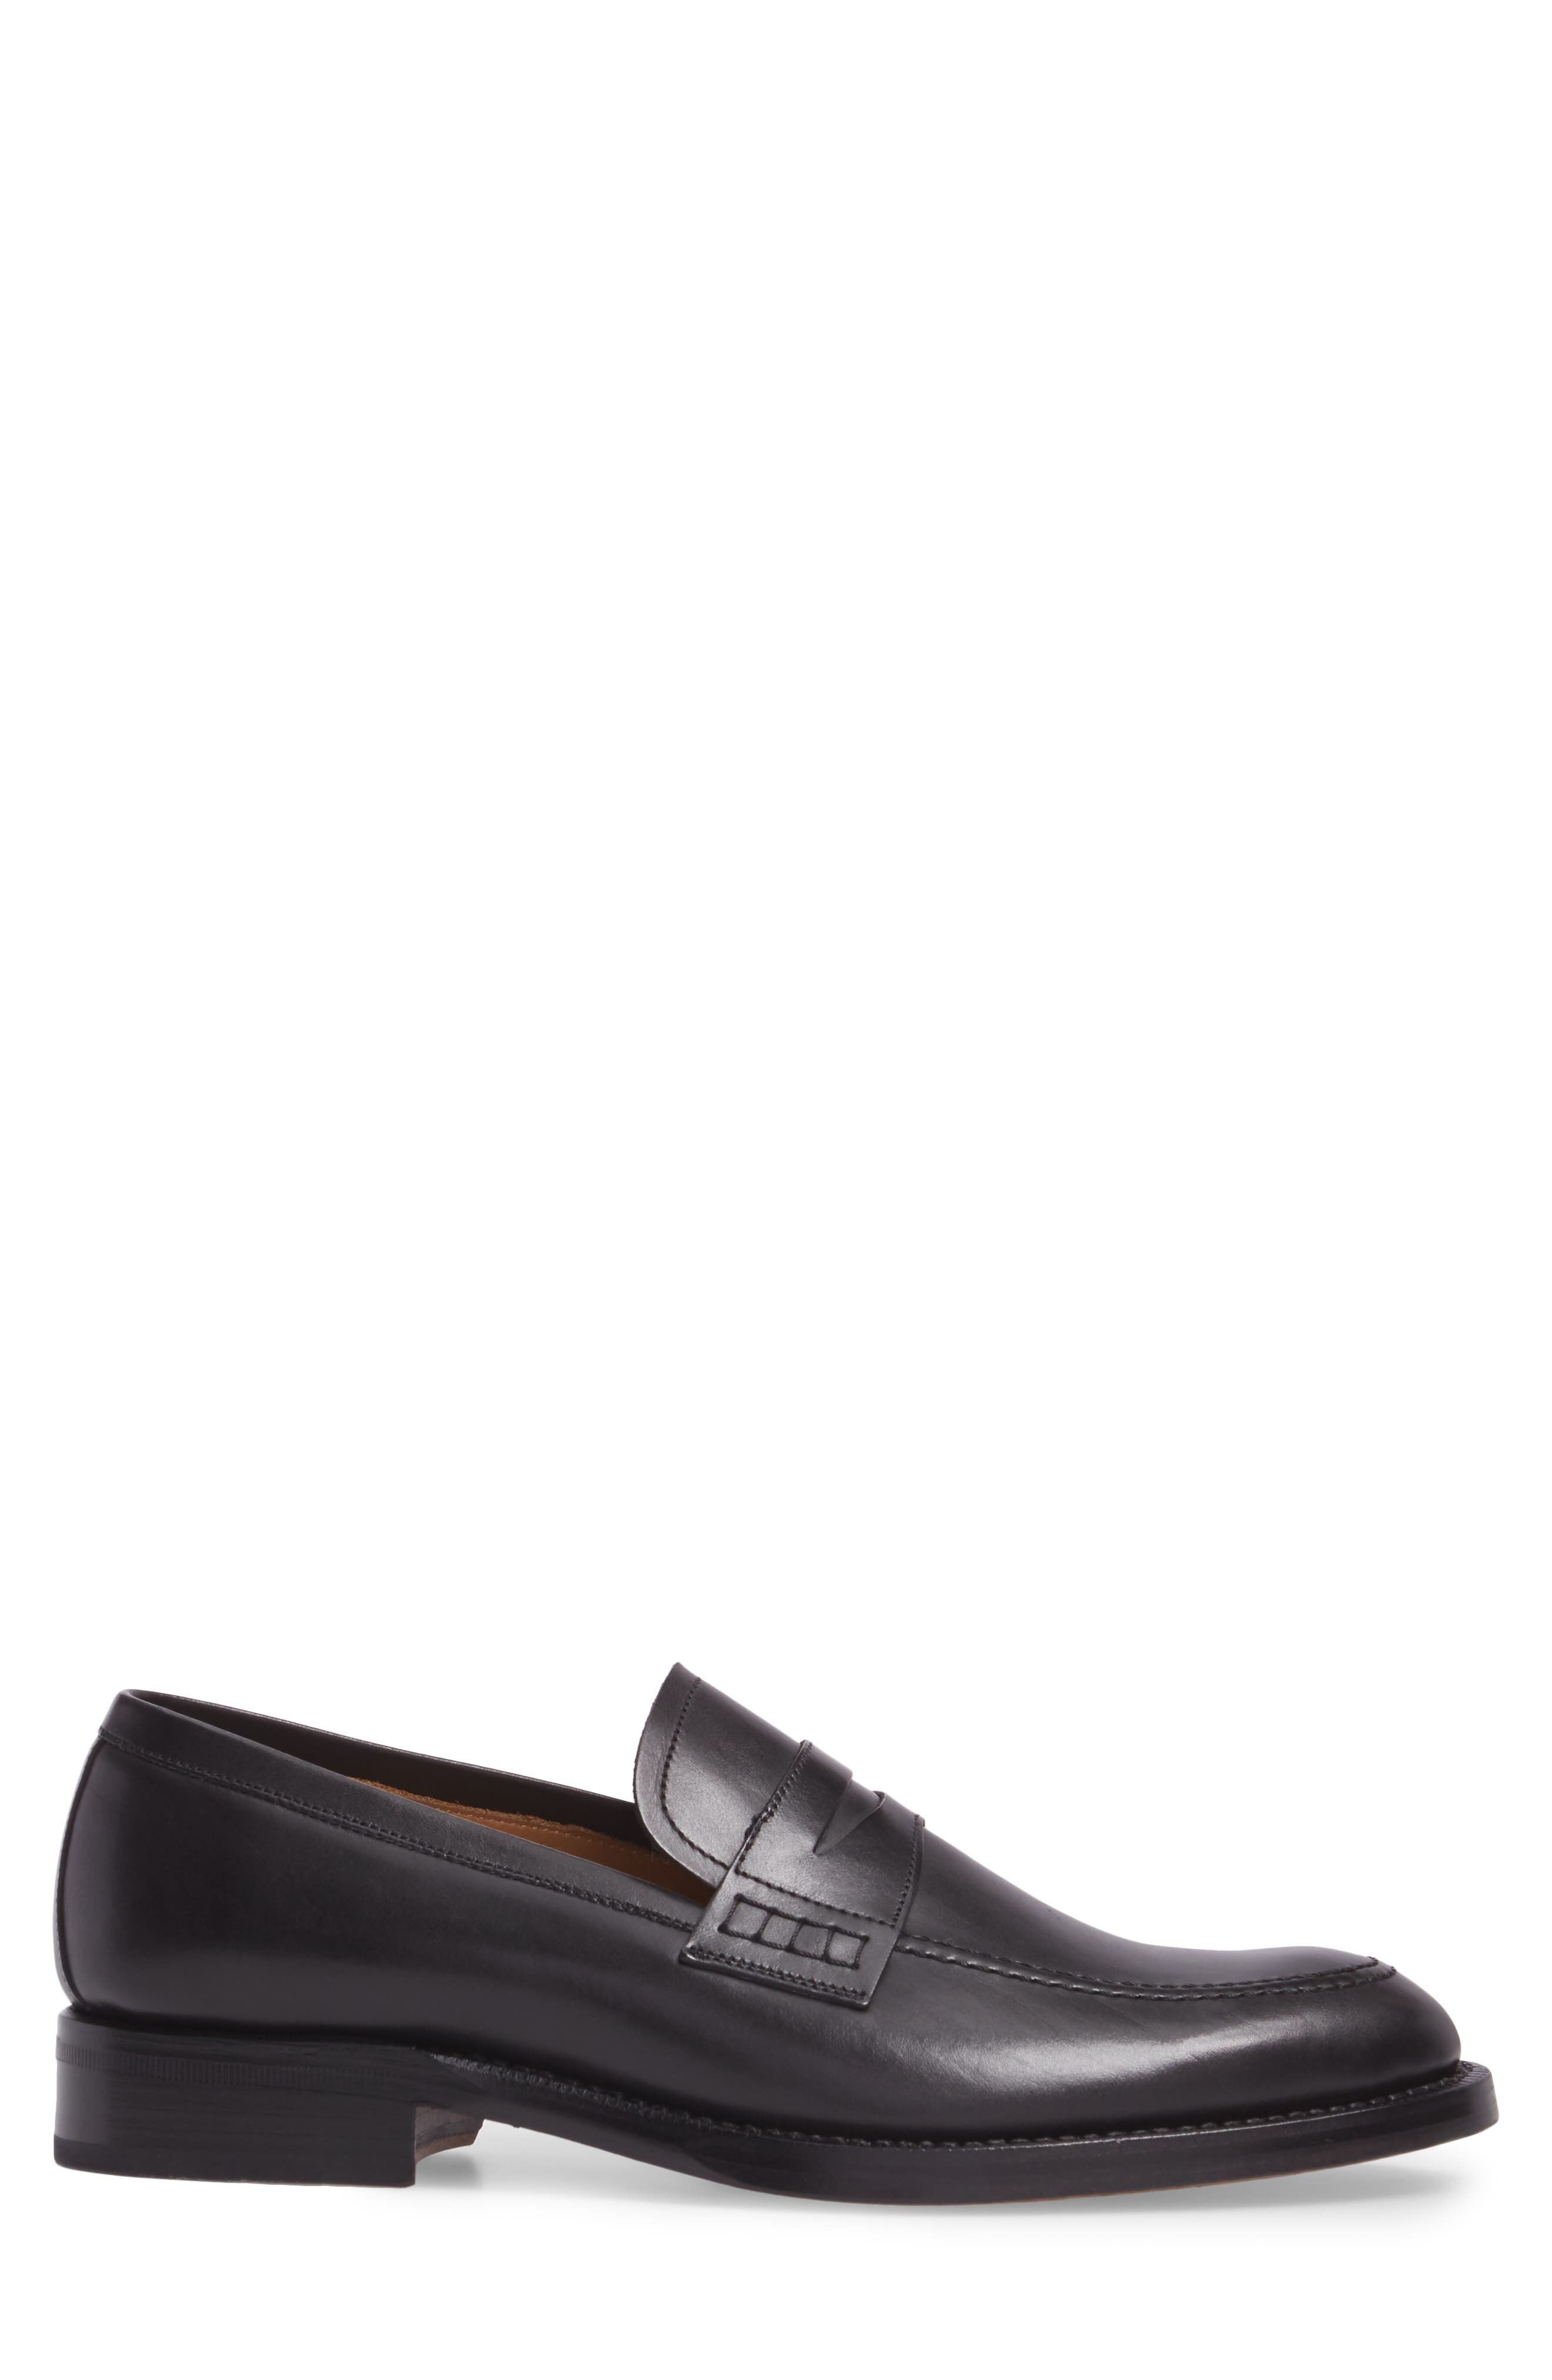 Archie Penny Loafer,                             Alternate thumbnail 3, color,                             001